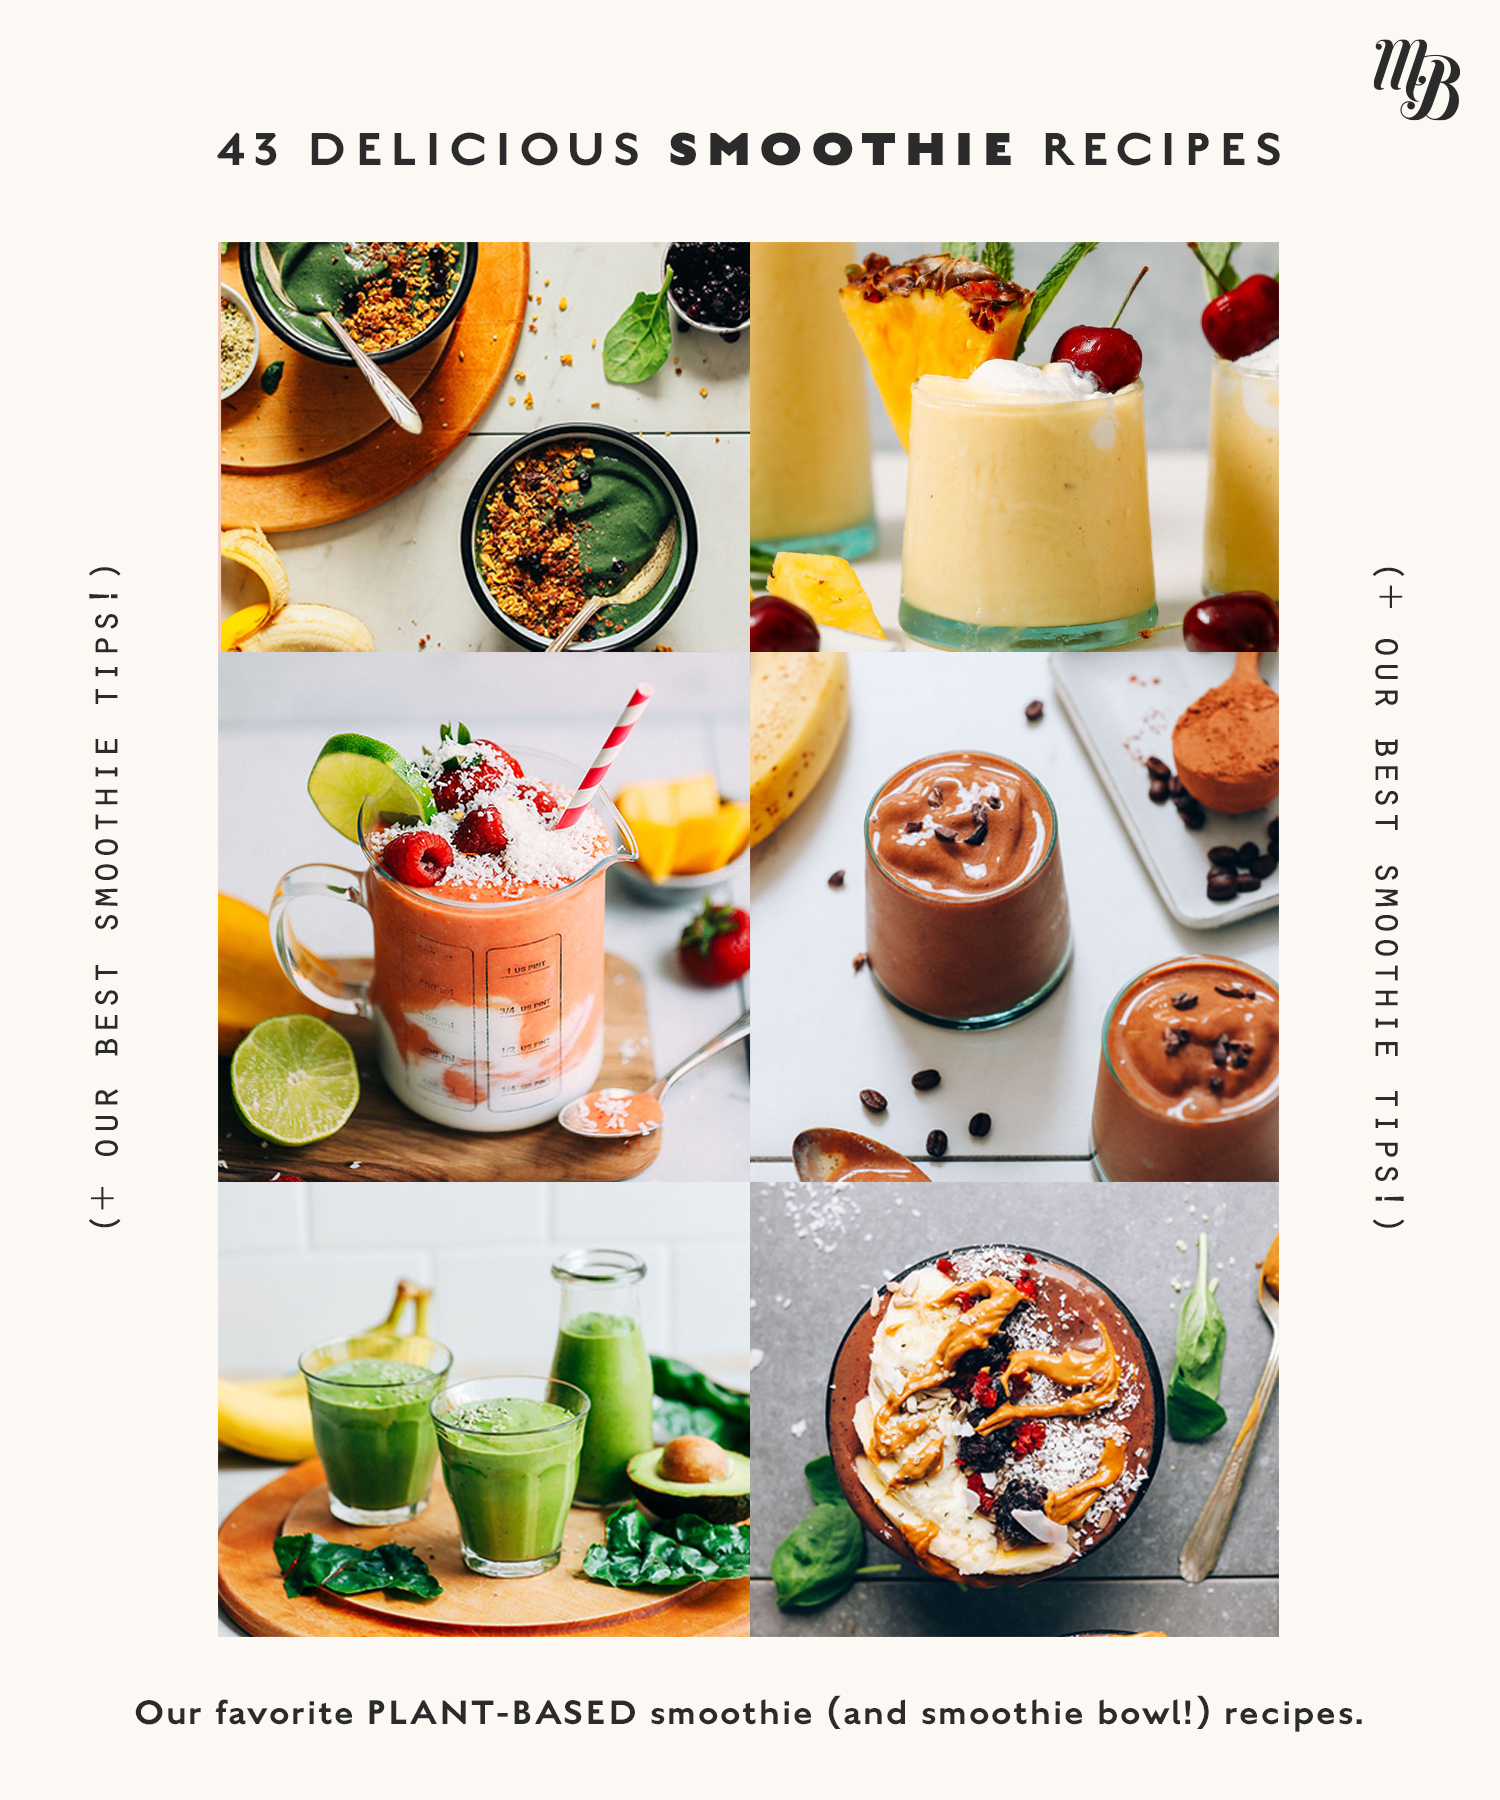 Assortment of vegan smoothies and smoothie bowls